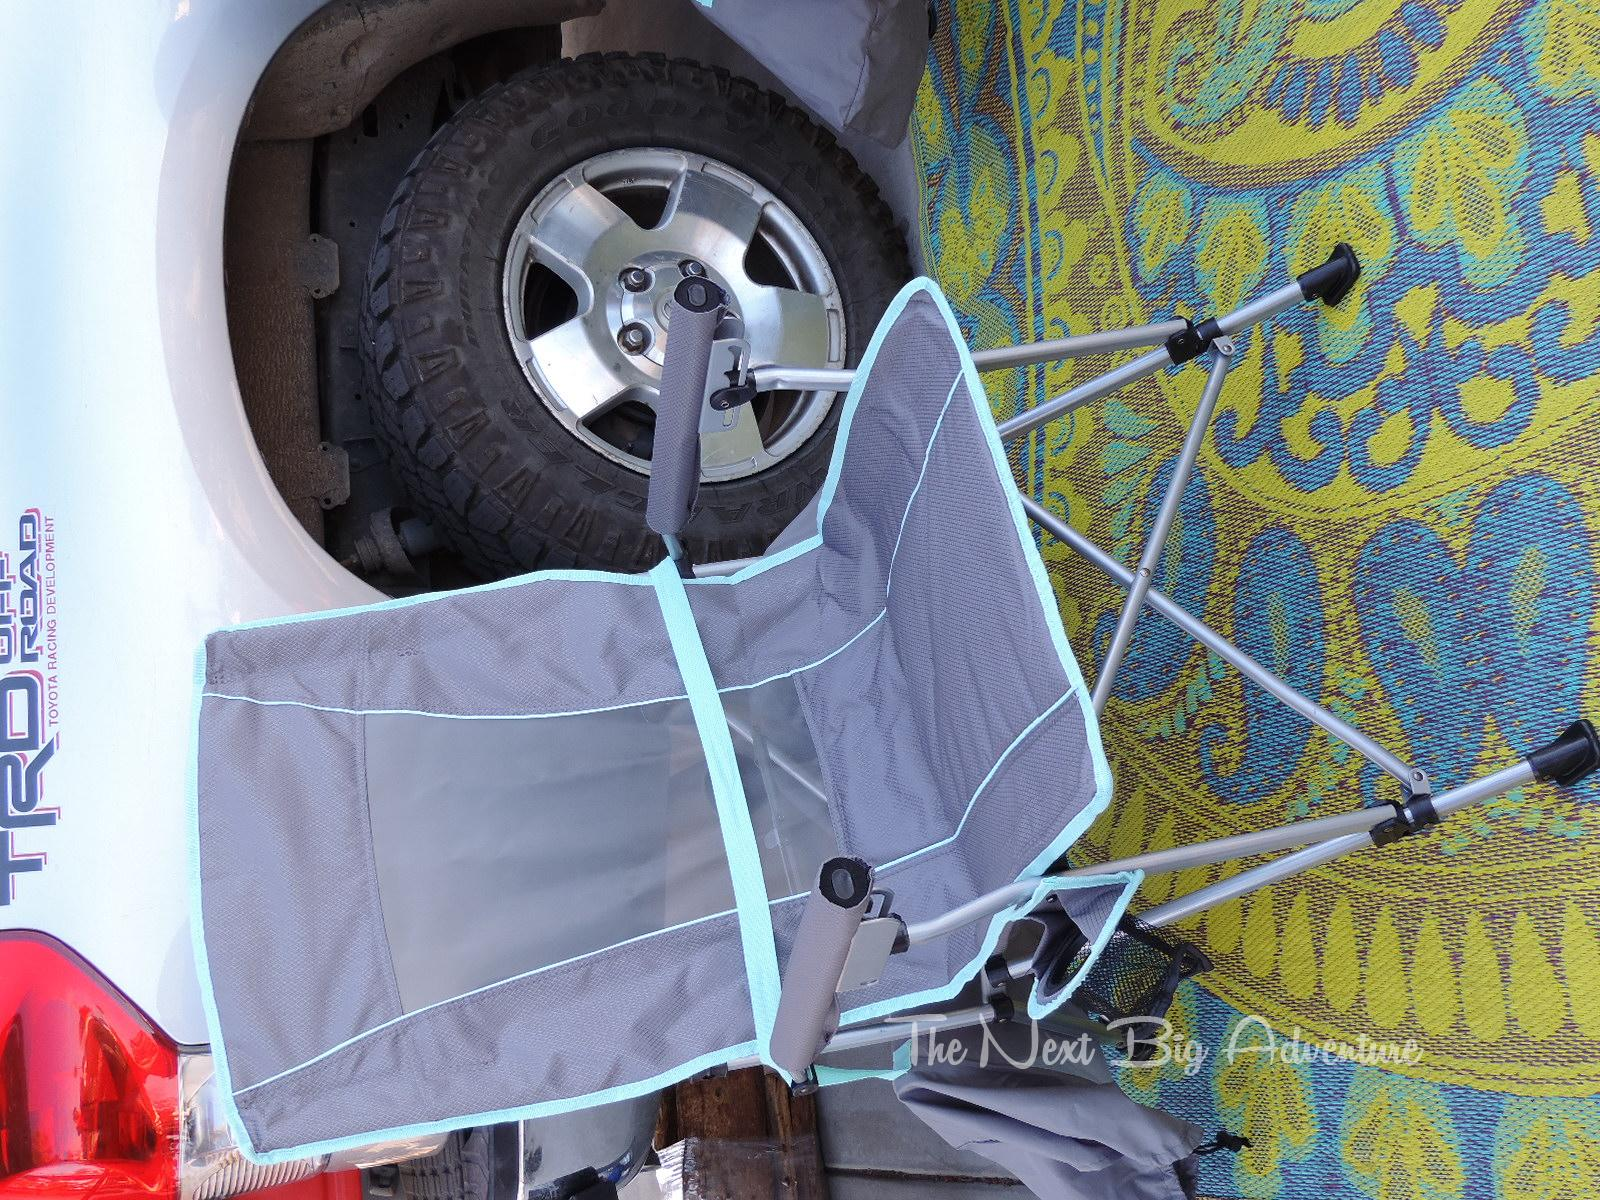 rei camp x chair wedding tables and chairs a tale of two gear review the next